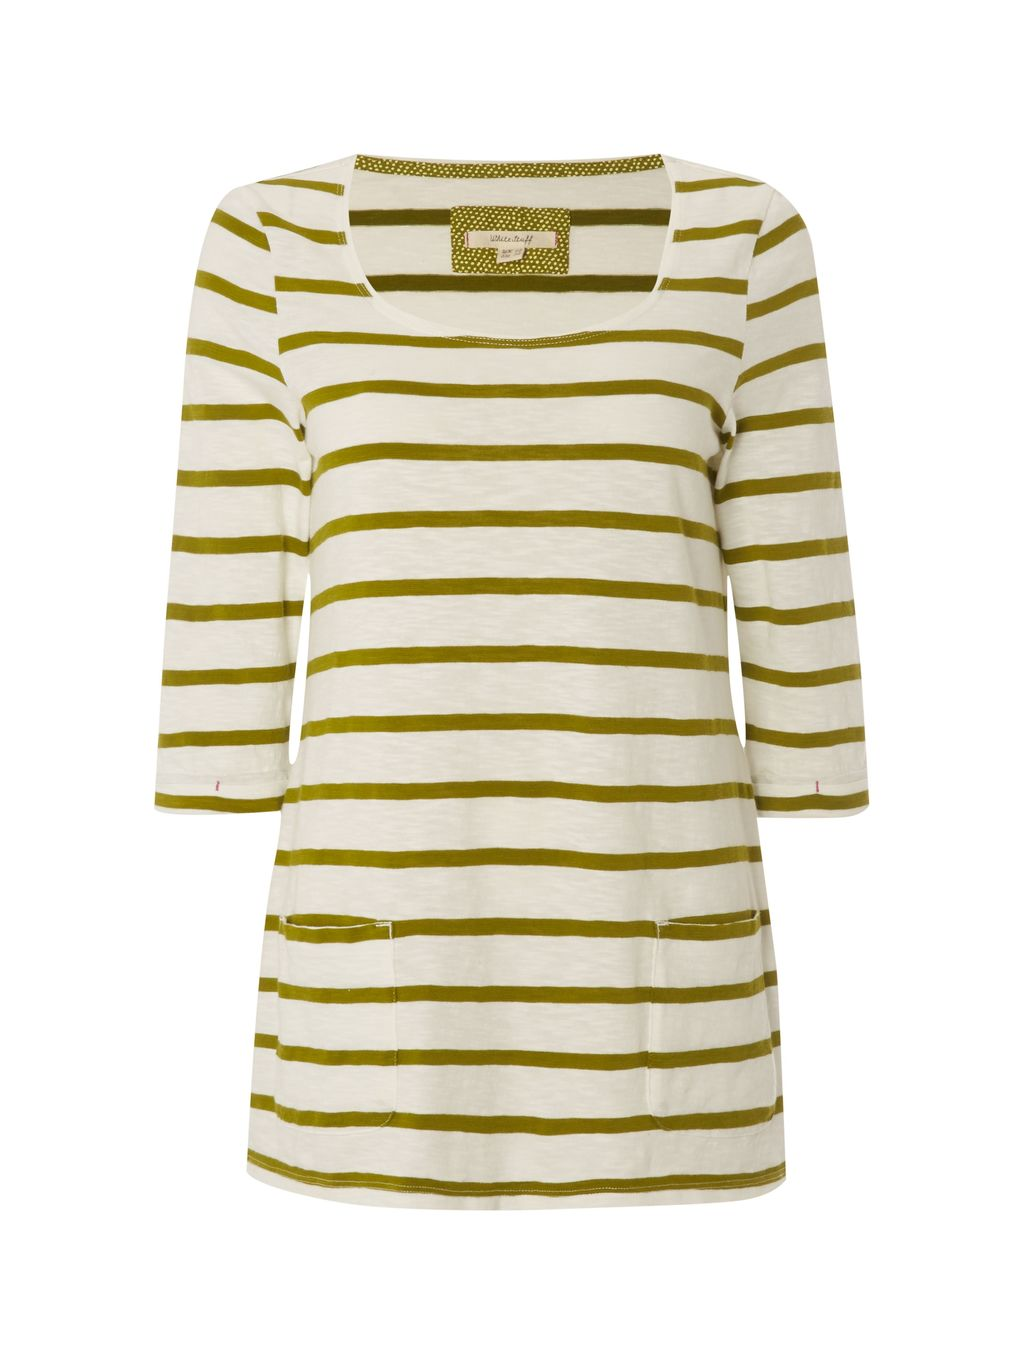 Coast Line Jersey Tee, Green - neckline: round neck; pattern: horizontal stripes; length: below the bottom; style: t-shirt; secondary colour: white; predominant colour: khaki; occasions: casual, creative work; fibres: cotton - 100%; fit: body skimming; sleeve length: 3/4 length; sleeve style: standard; pattern type: fabric; pattern size: light/subtle; texture group: jersey - stretchy/drapey; season: s/s 2016; wardrobe: basic